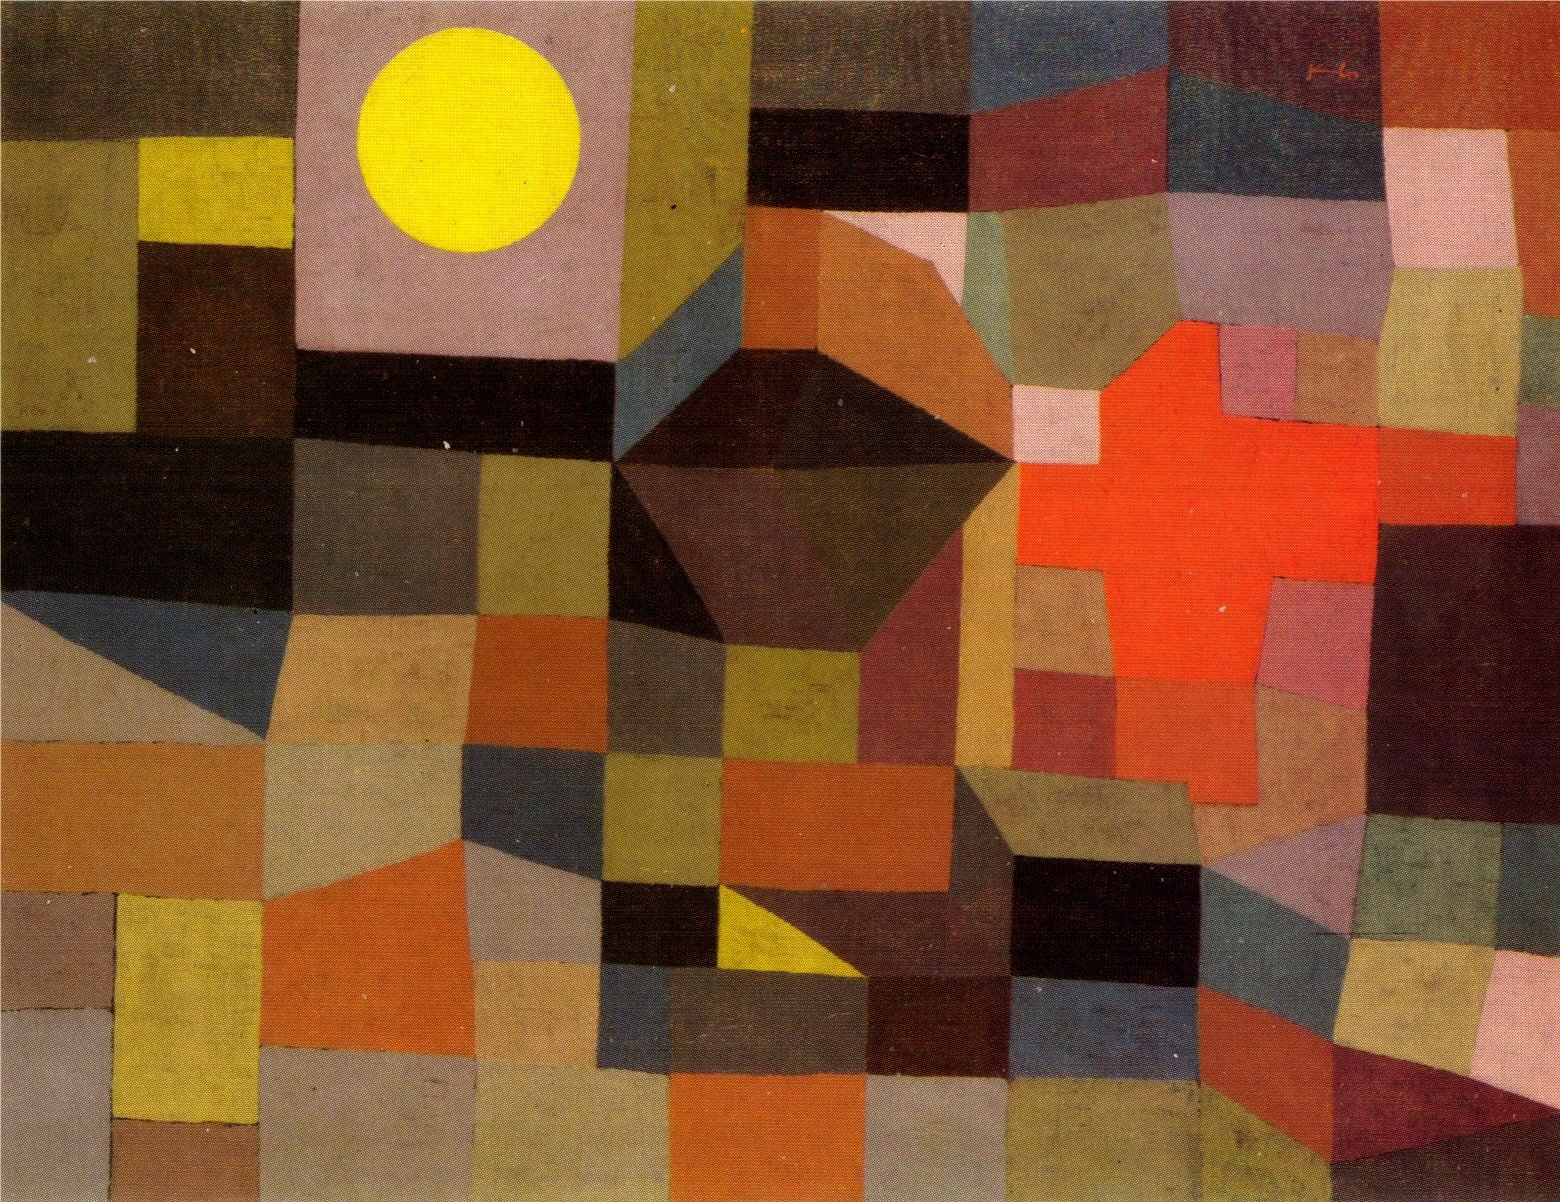 paul klee Paul klee's was a swiss born painter, with a unique style that was influenced by expressionism, cubism, surrealism, and orientalism.